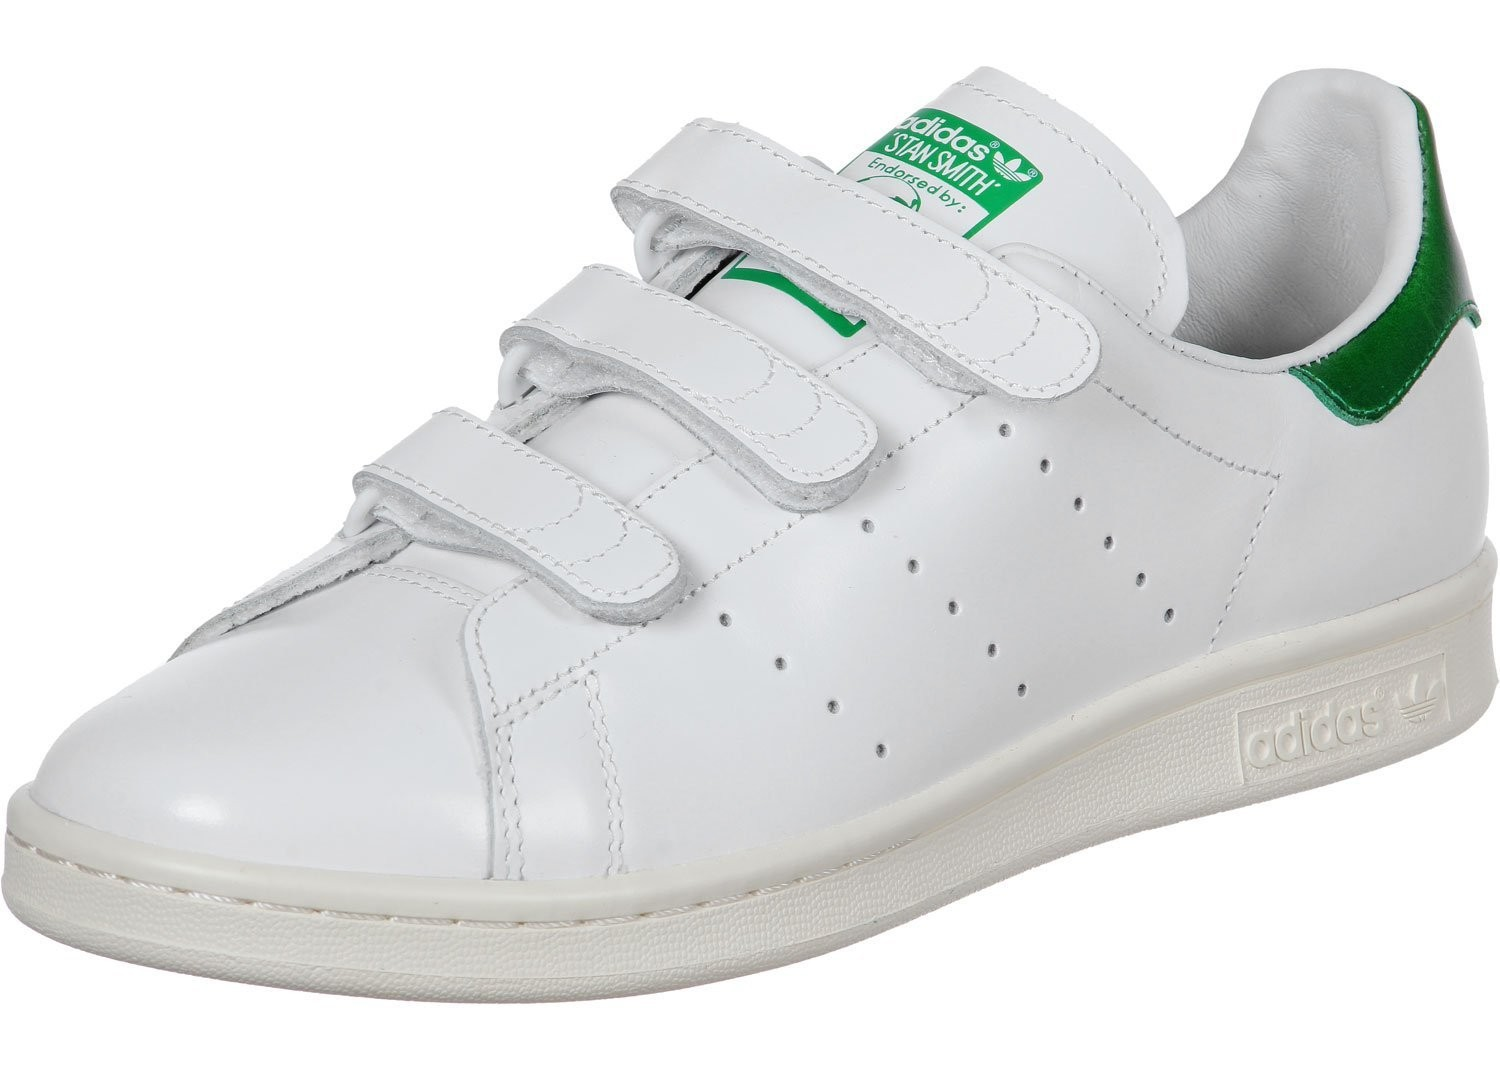 stan smith scratch pas cher Off 56% - www.bashhguidelines.org